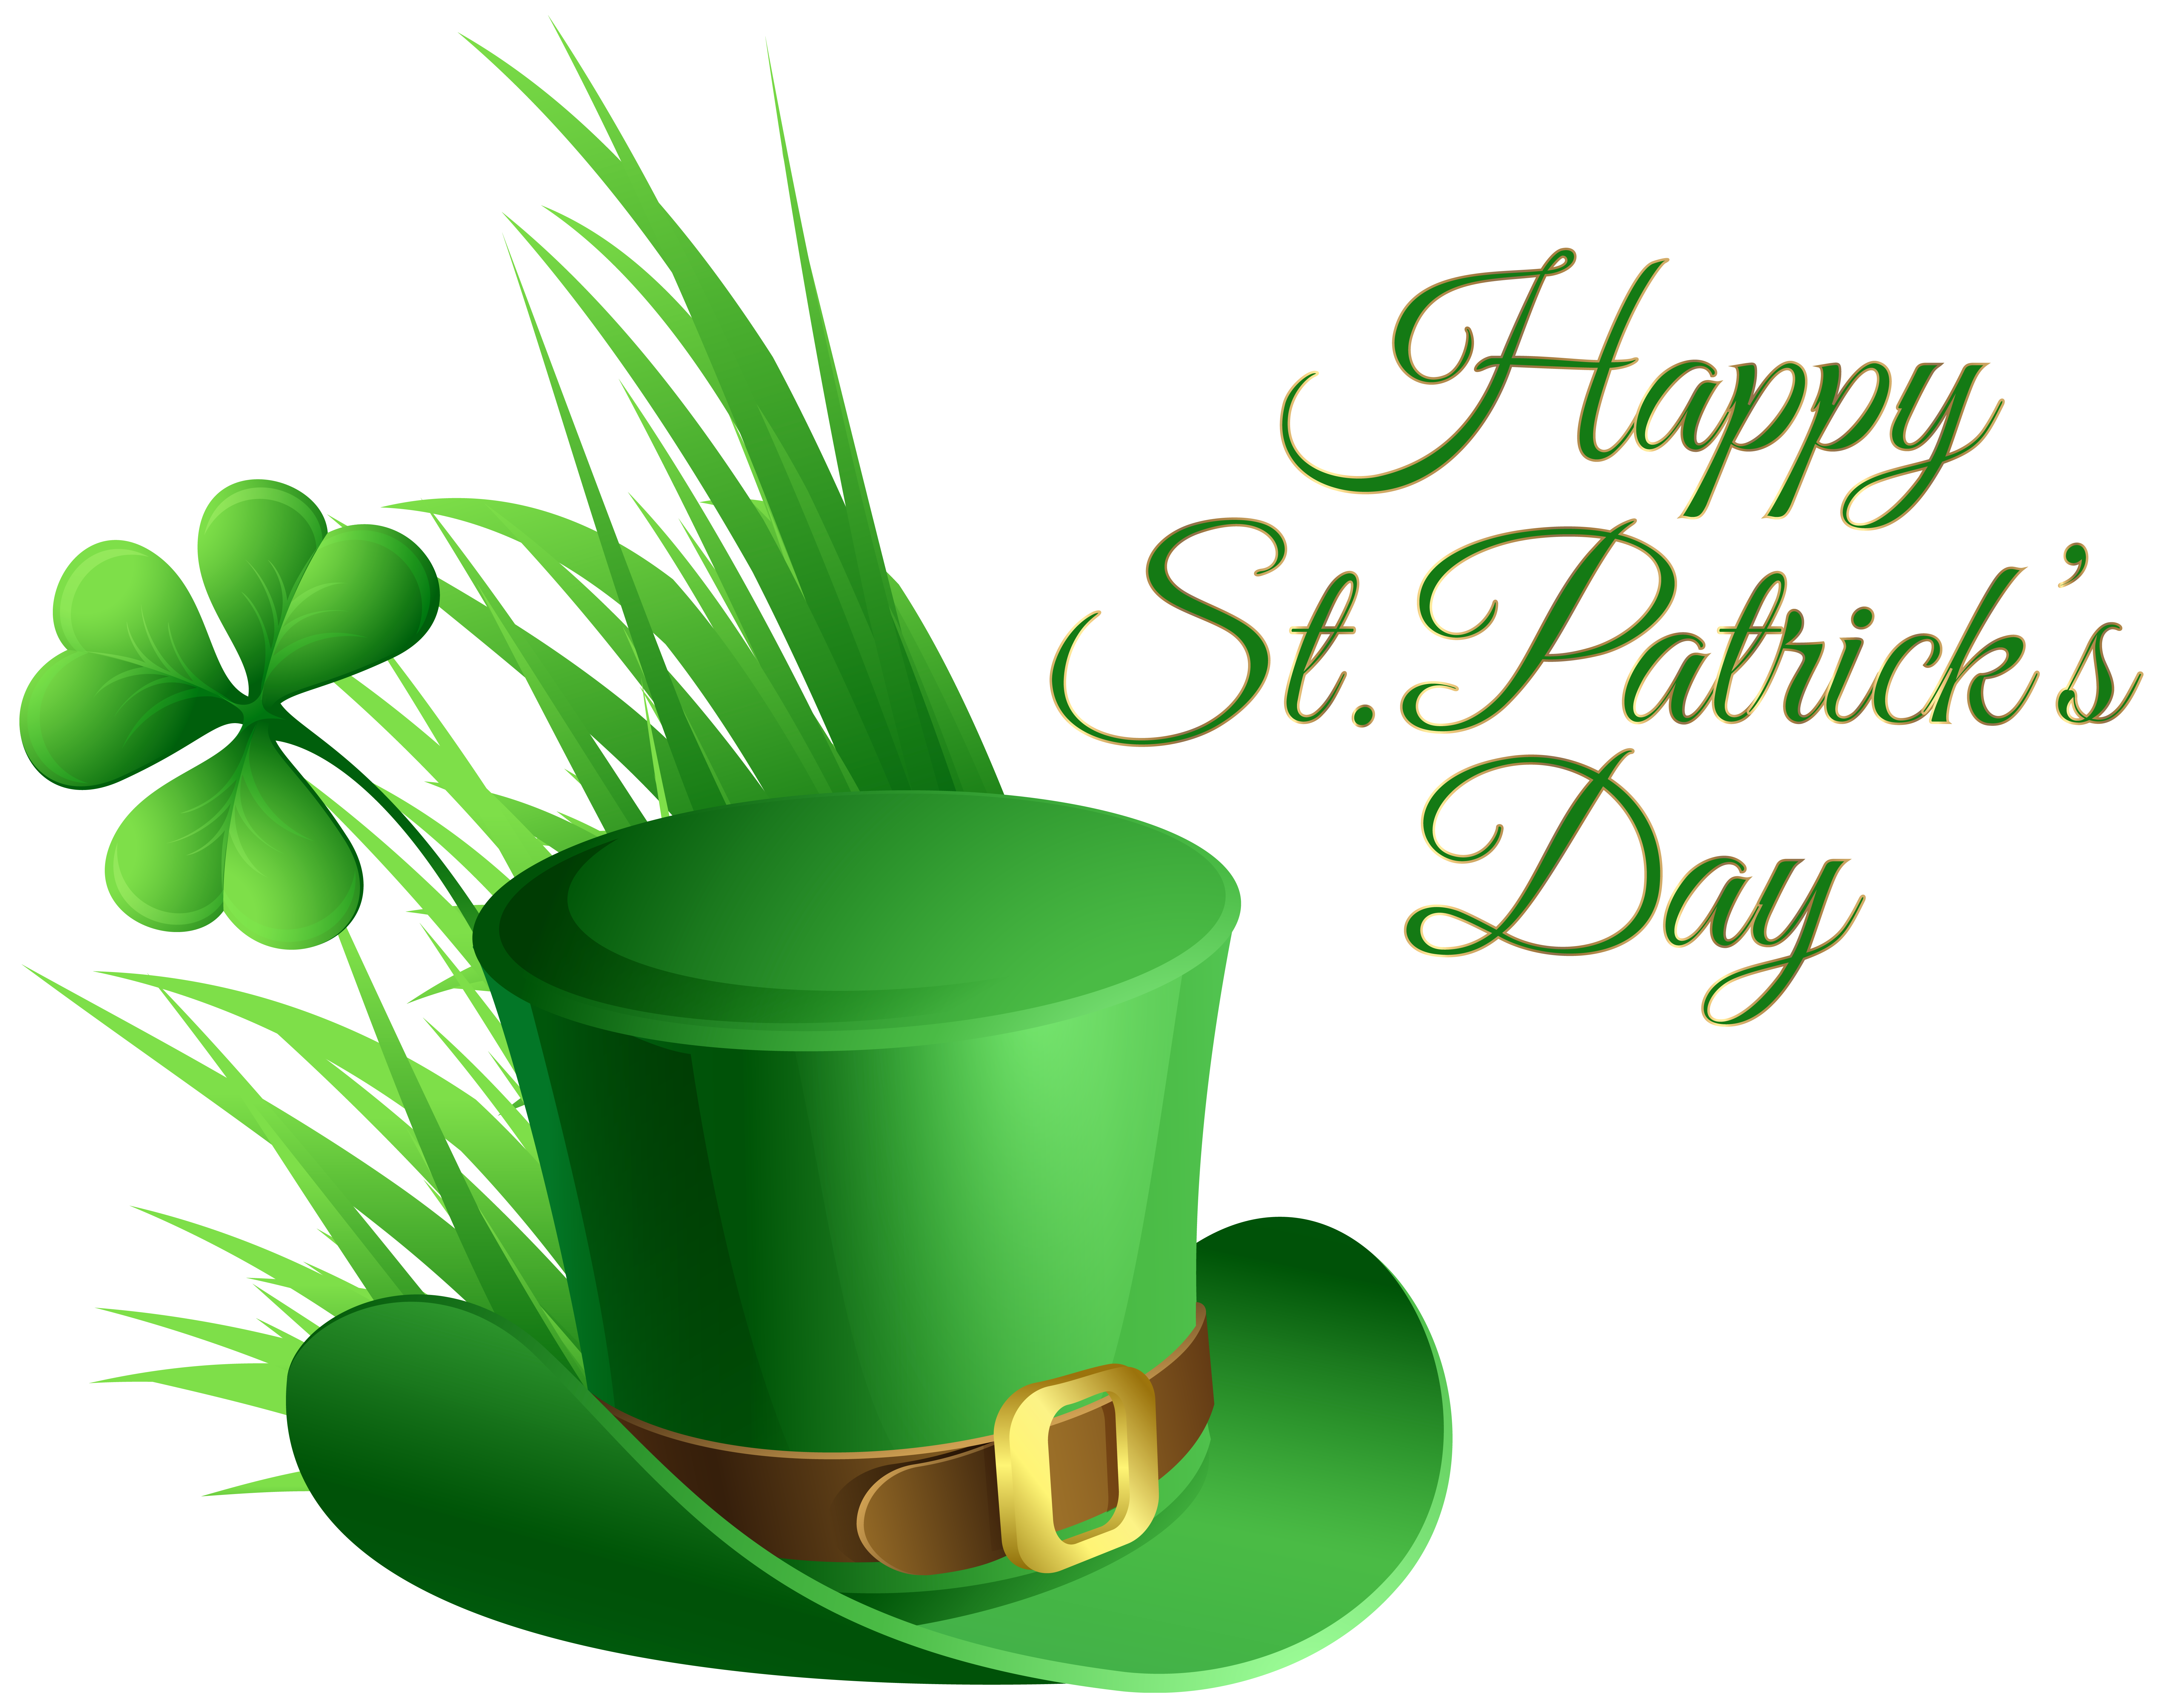 7246x5723 St Patricks Day Hat And Shamrock Transparent Png Clip Art Image